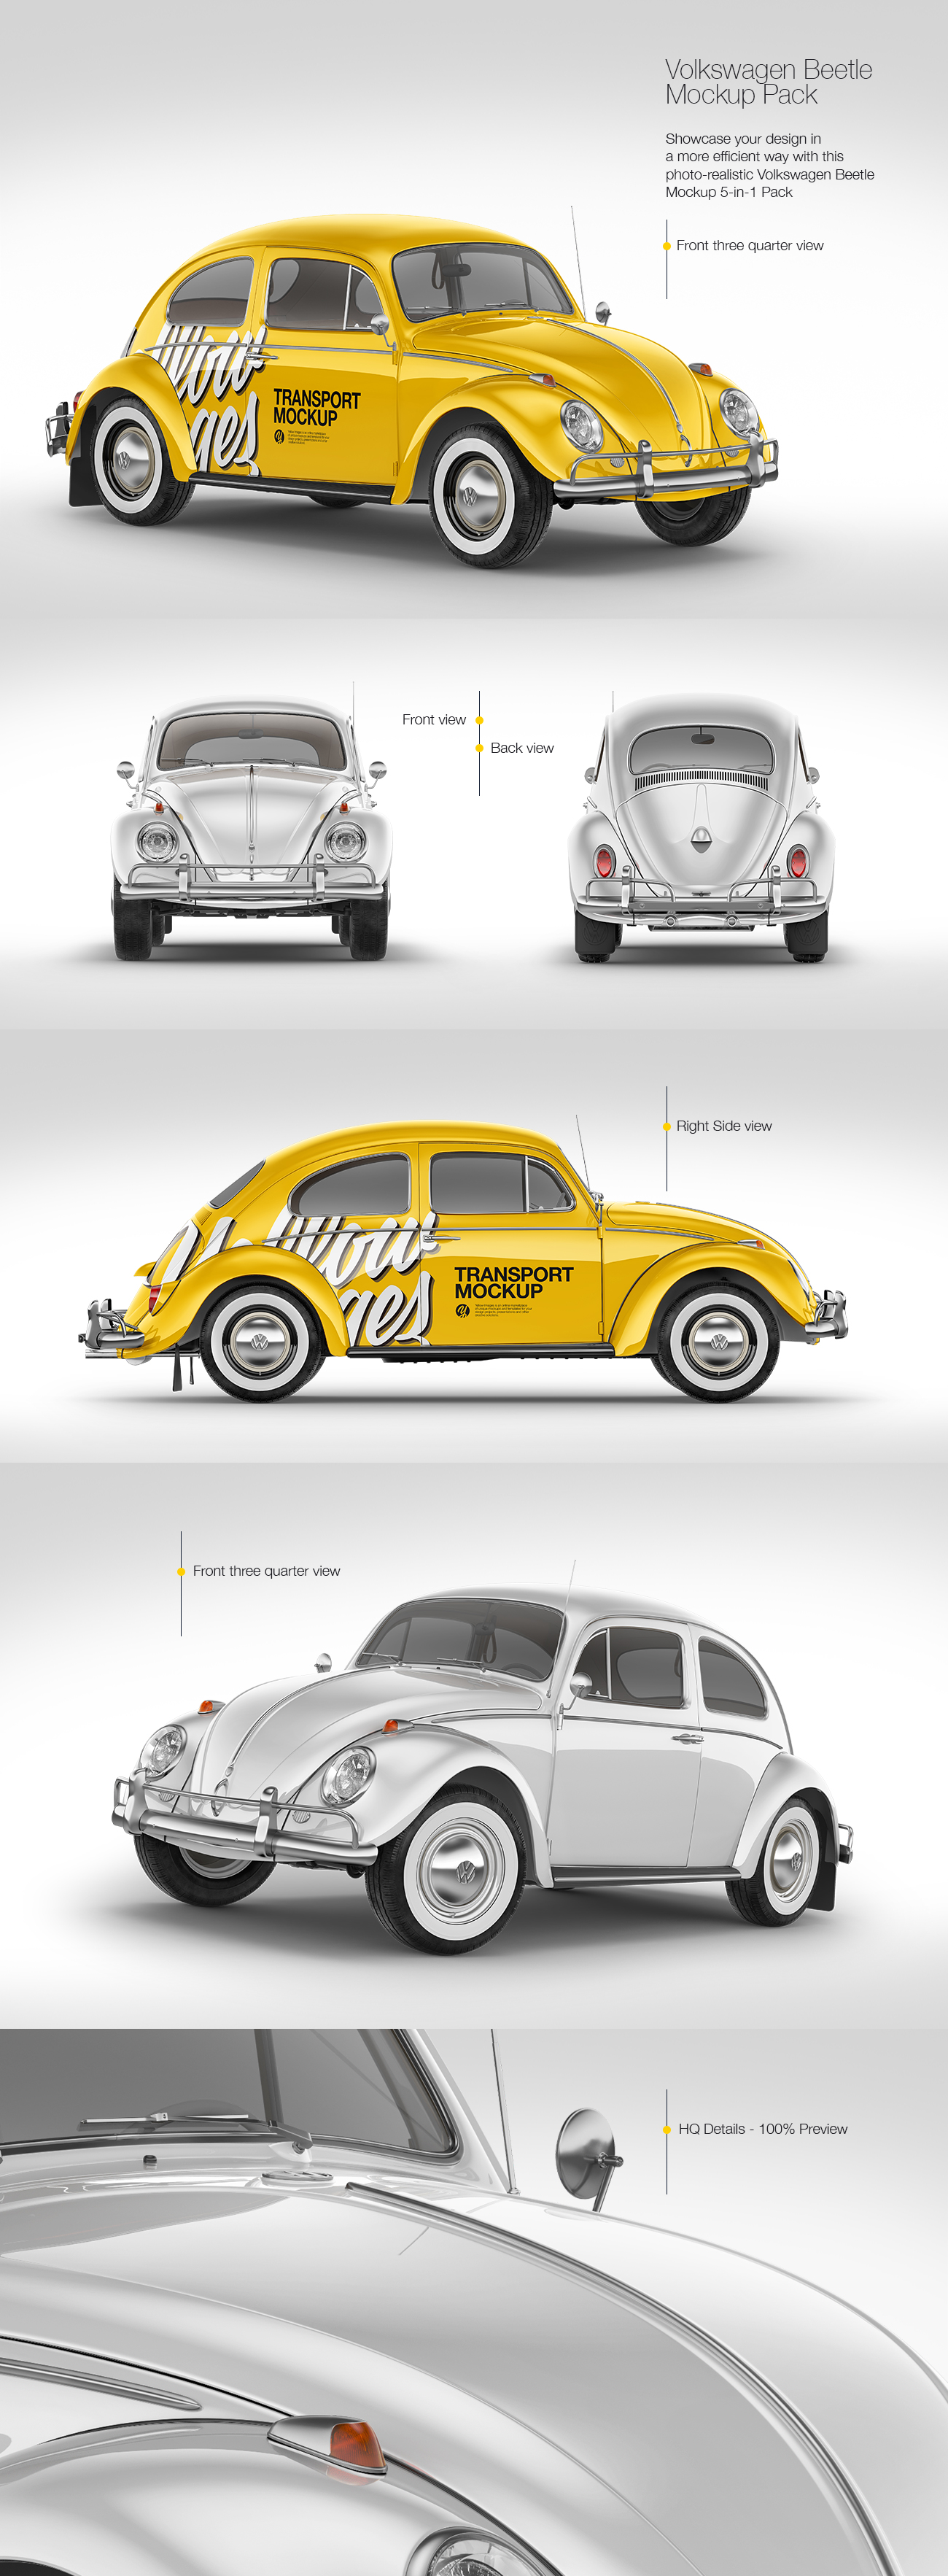 Download Volkswagen Beetle Mockup Pack In Handpicked Sets Of Vehicles On Yellow Images Creative Store PSD Mockup Templates